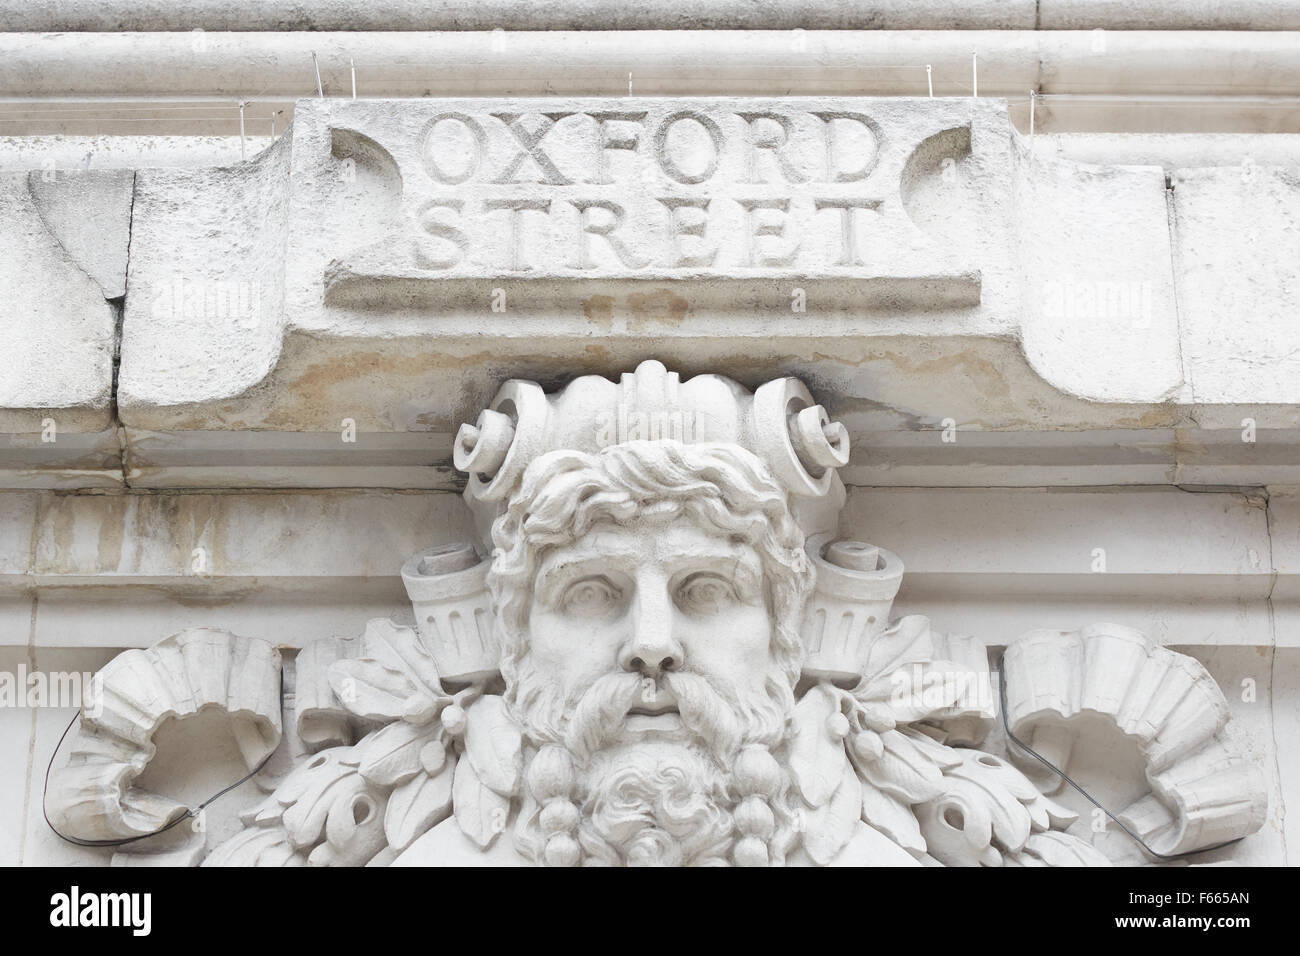 Ancient Oxford street sign in white stone in London - Stock Image